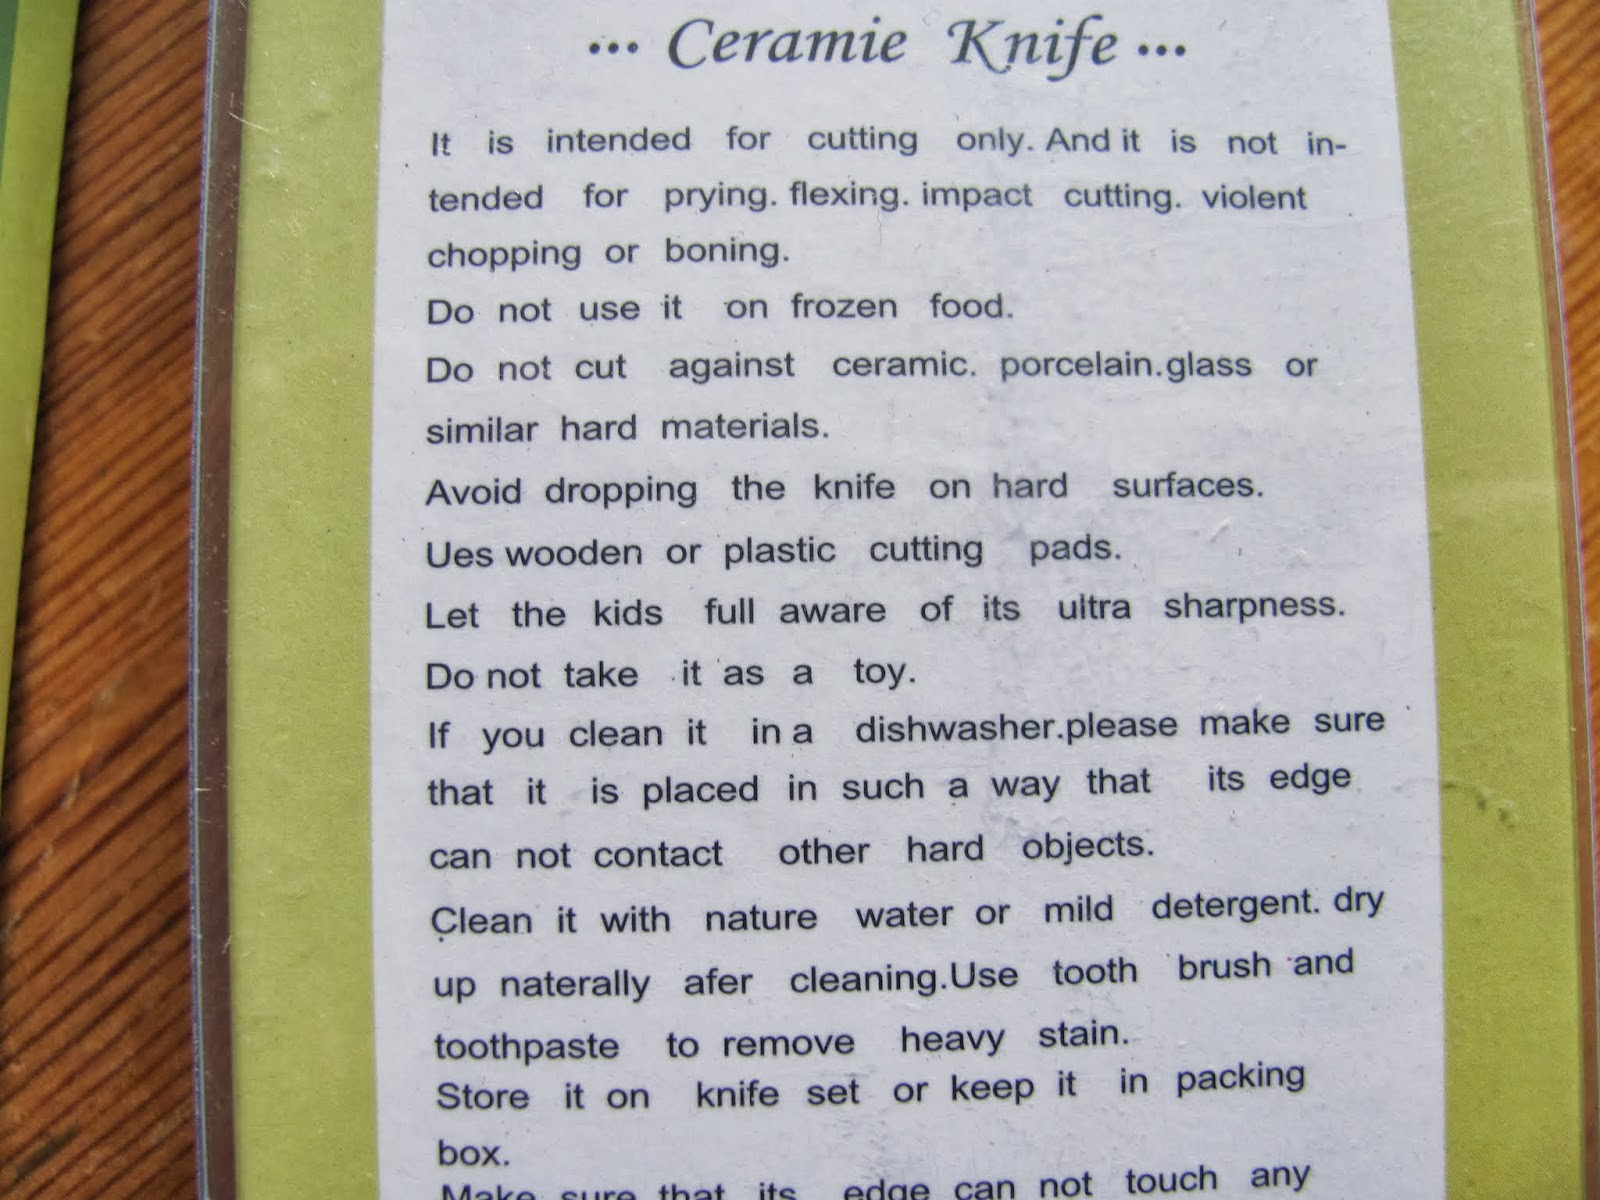 Warnings of the ceramic knife told in poorly-translated English